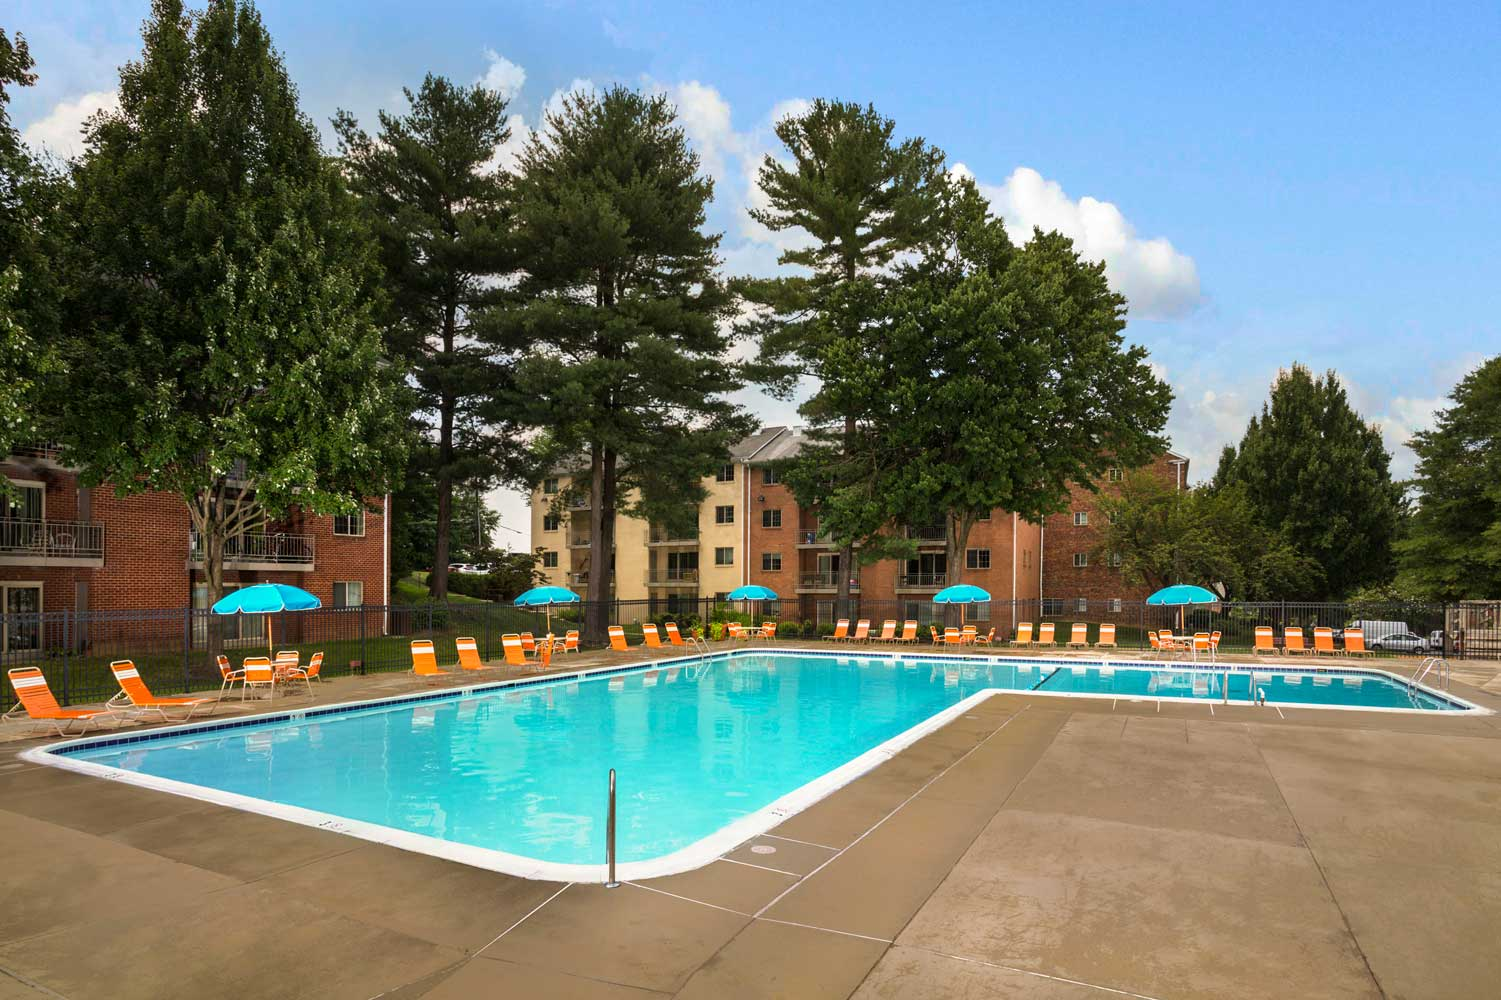 Refreshing swimming pool with sundeck at Village Square West Apartments